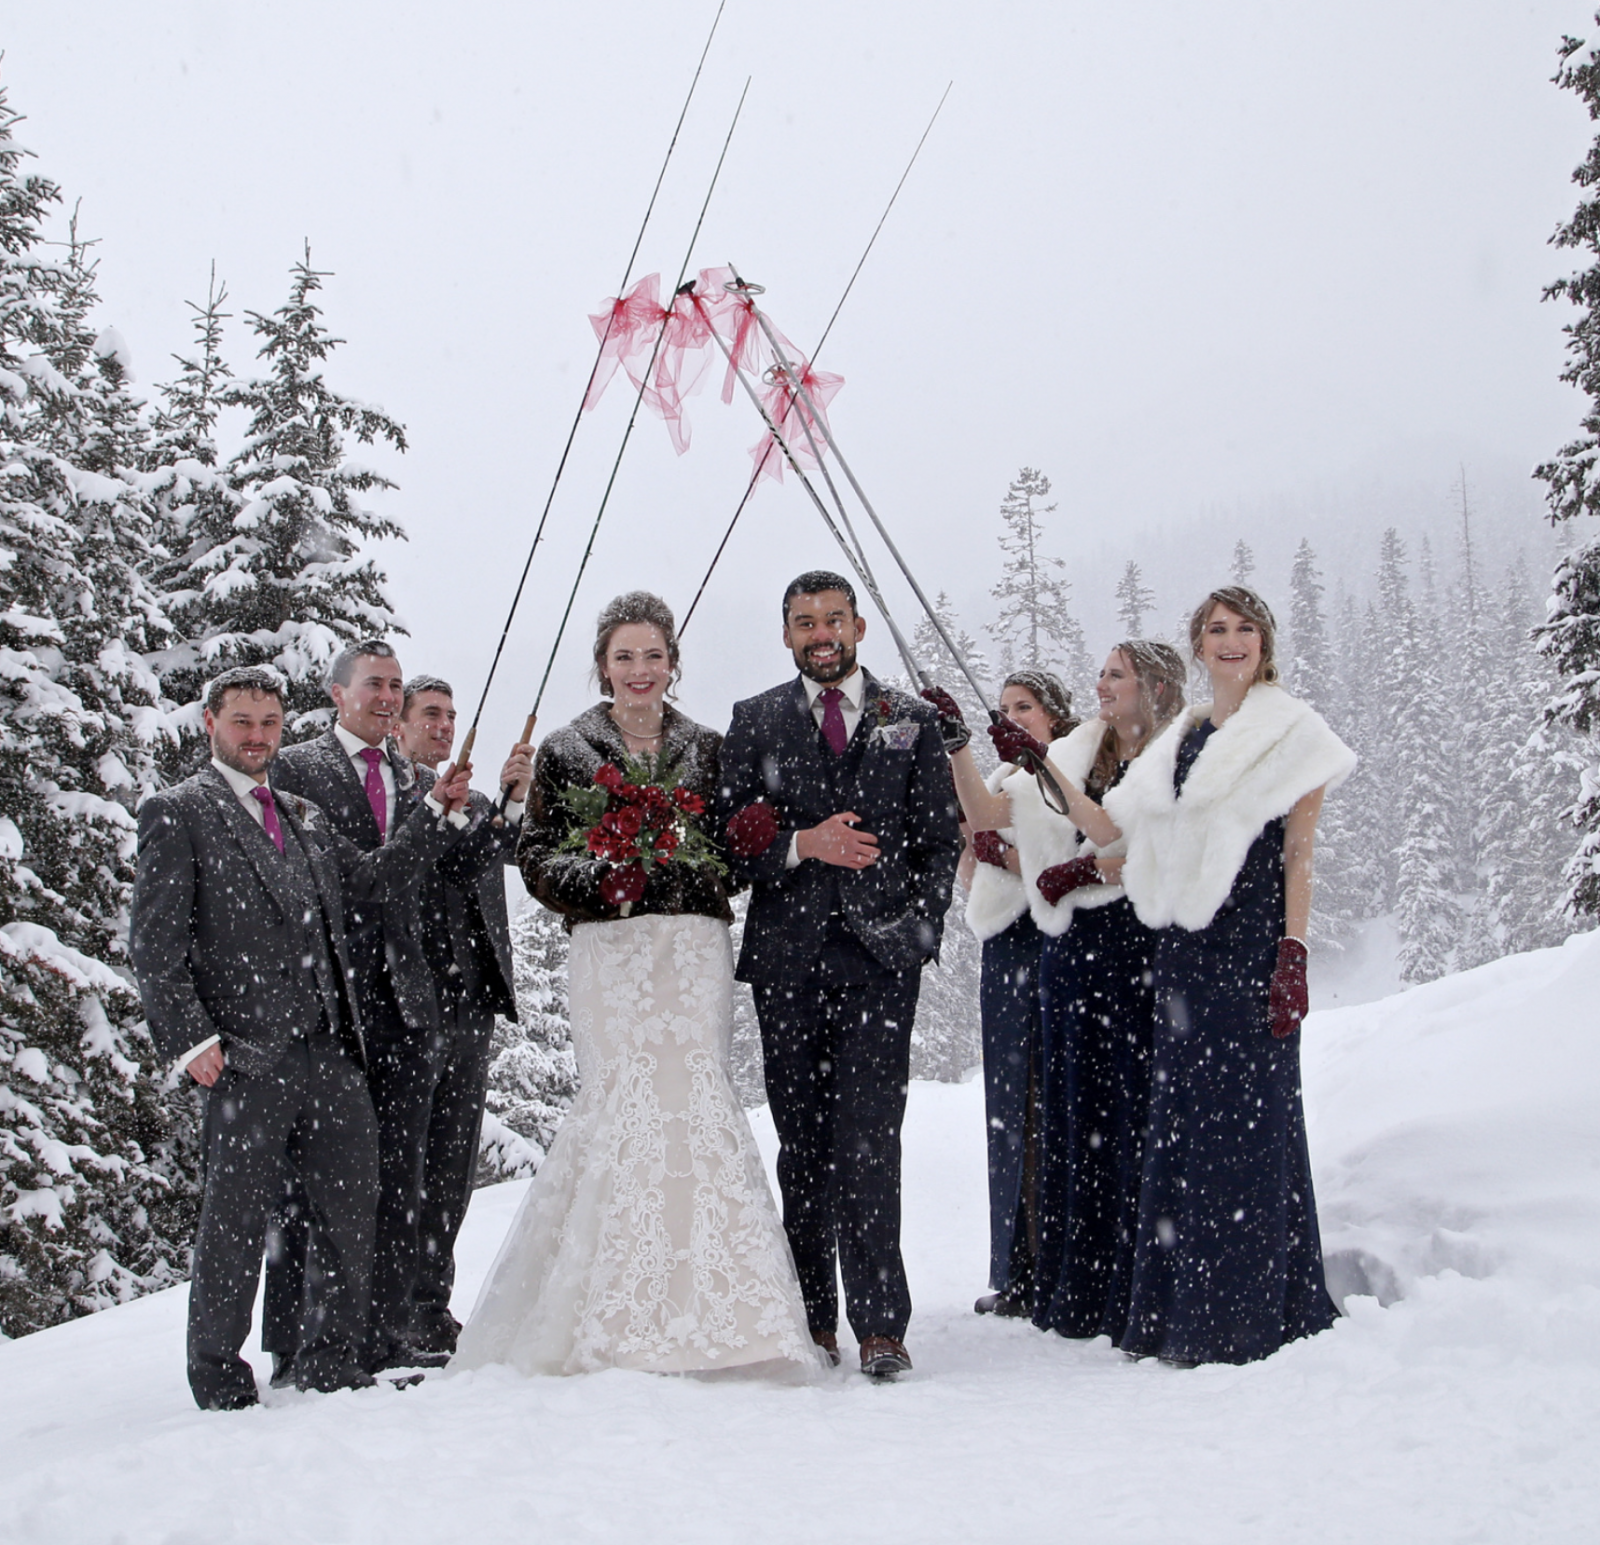 Fly fishing rods marries cross country ski poles